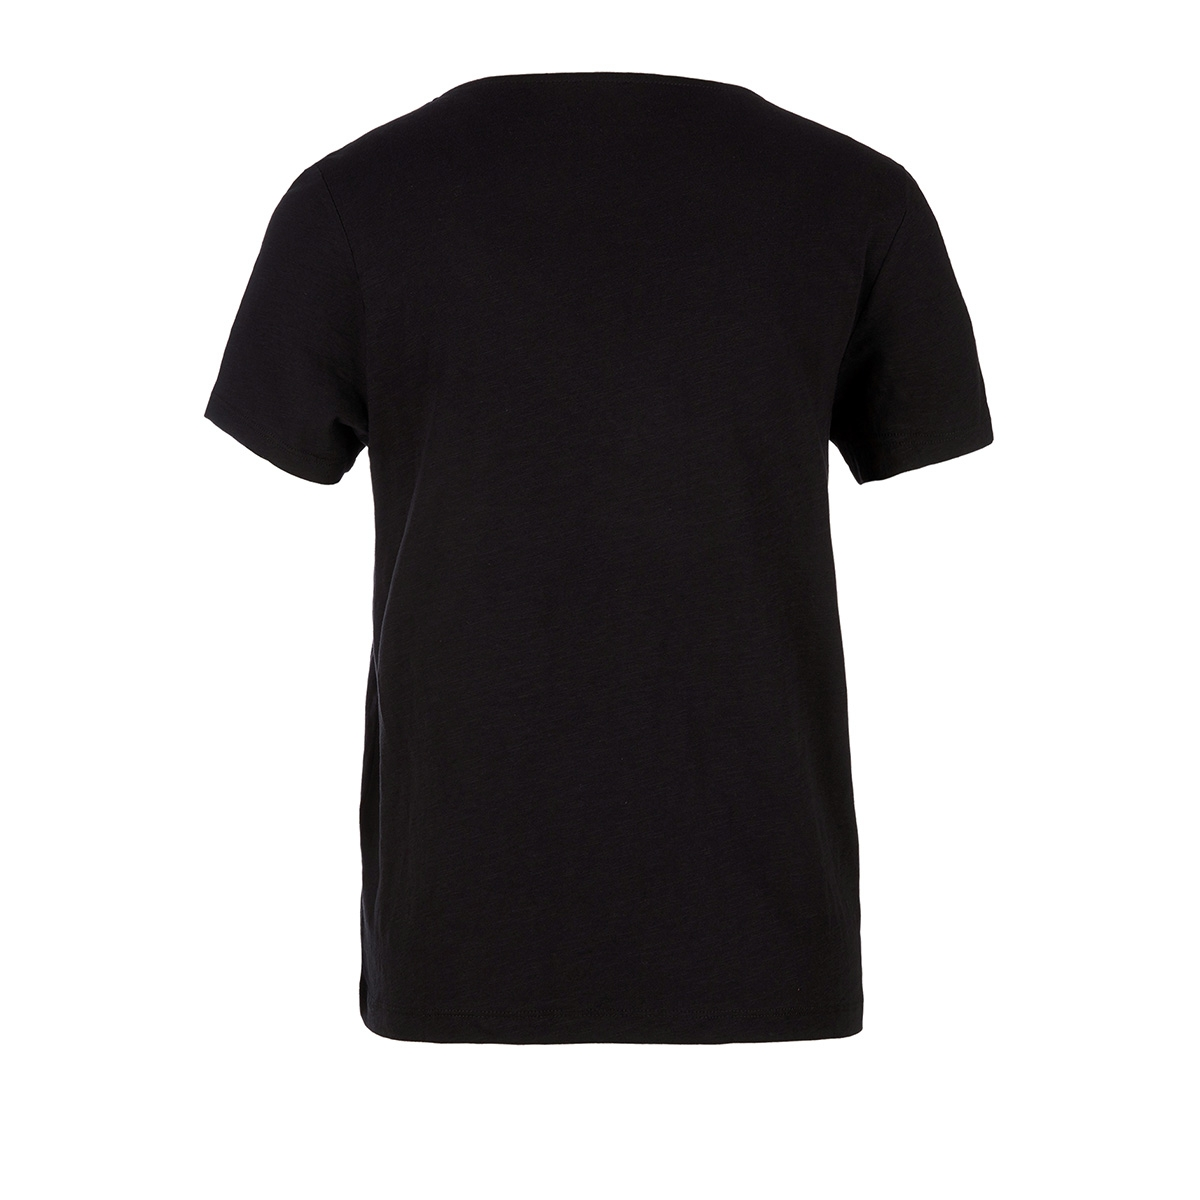 t shirt 14005325021 s.oliver t-shirt 9999